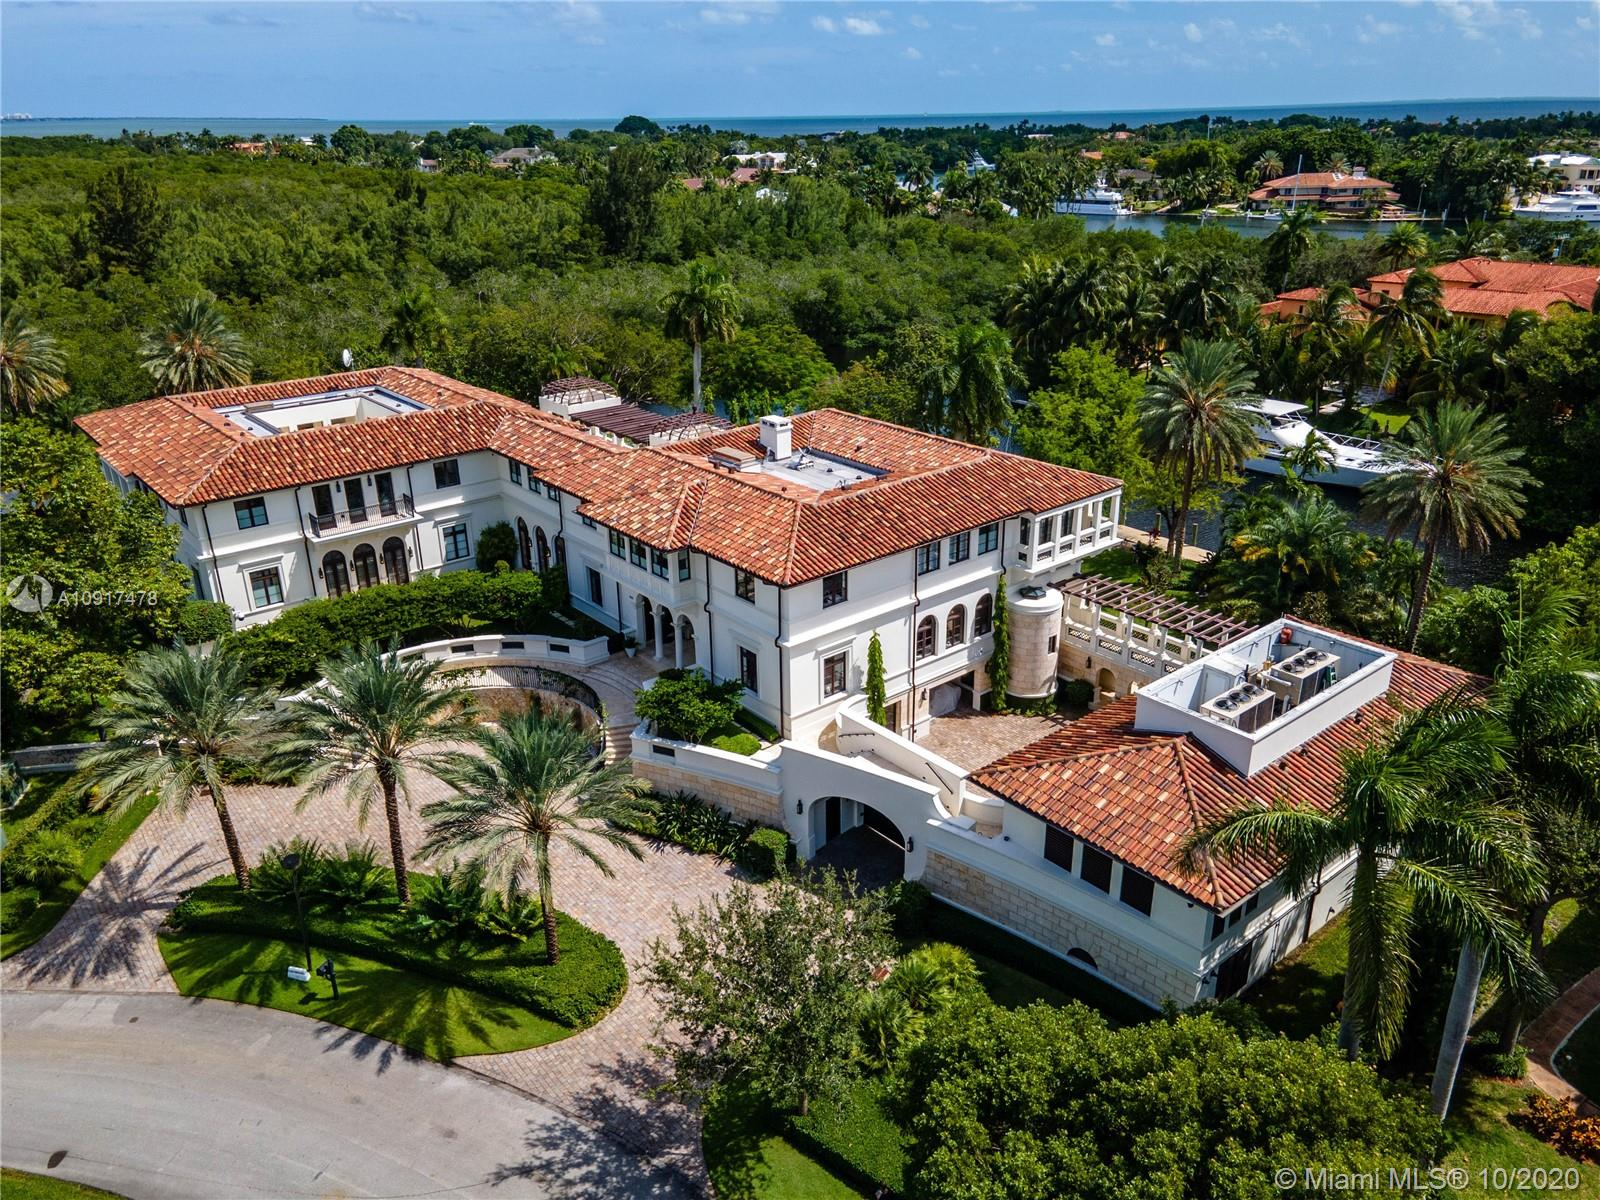 One of a kind opportunity to live in Villa Costanera on desirable Islands of Cocoplum & Coral Gables waterway. This Amalfi coast inspired masterpiece offers 20,546 sq living space & sits on 1.3 acres corner lot with 480' water frontage & dock with ocean access, 12 bedrooms, 13 full bathrooms, 2 powder rooms, commercial elevator, custom crafted italian kitchen + butler's pantry, huge master suite with his/her bath, expansive terraces, fabulous views of garden and waterway, 2 kitchens, wine cellar, separate guest/staff quarters, outdoor entertainment area + summer kitchen, covered terraces, heated pool & so much more. Unique architecture by renowned architect Rafael Portoundo allows natural light to radiate throughout every room. Will exceed your expectations!